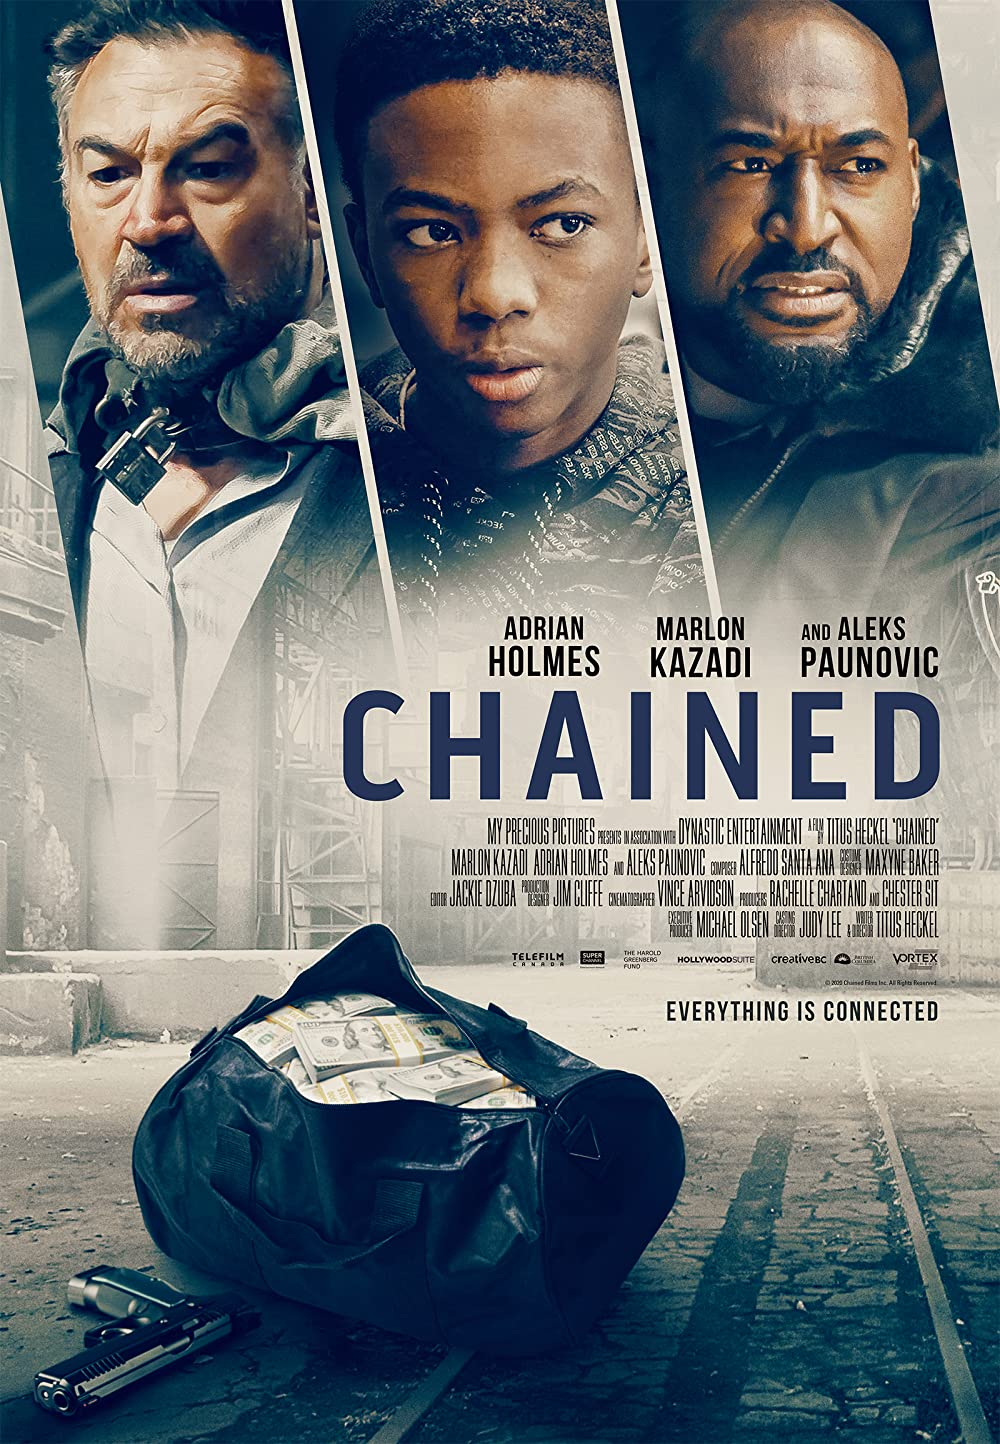 Chained (2020) Bengali Dubbed (Voice Over) WEBRip 720p [Full Movie] 1XBET